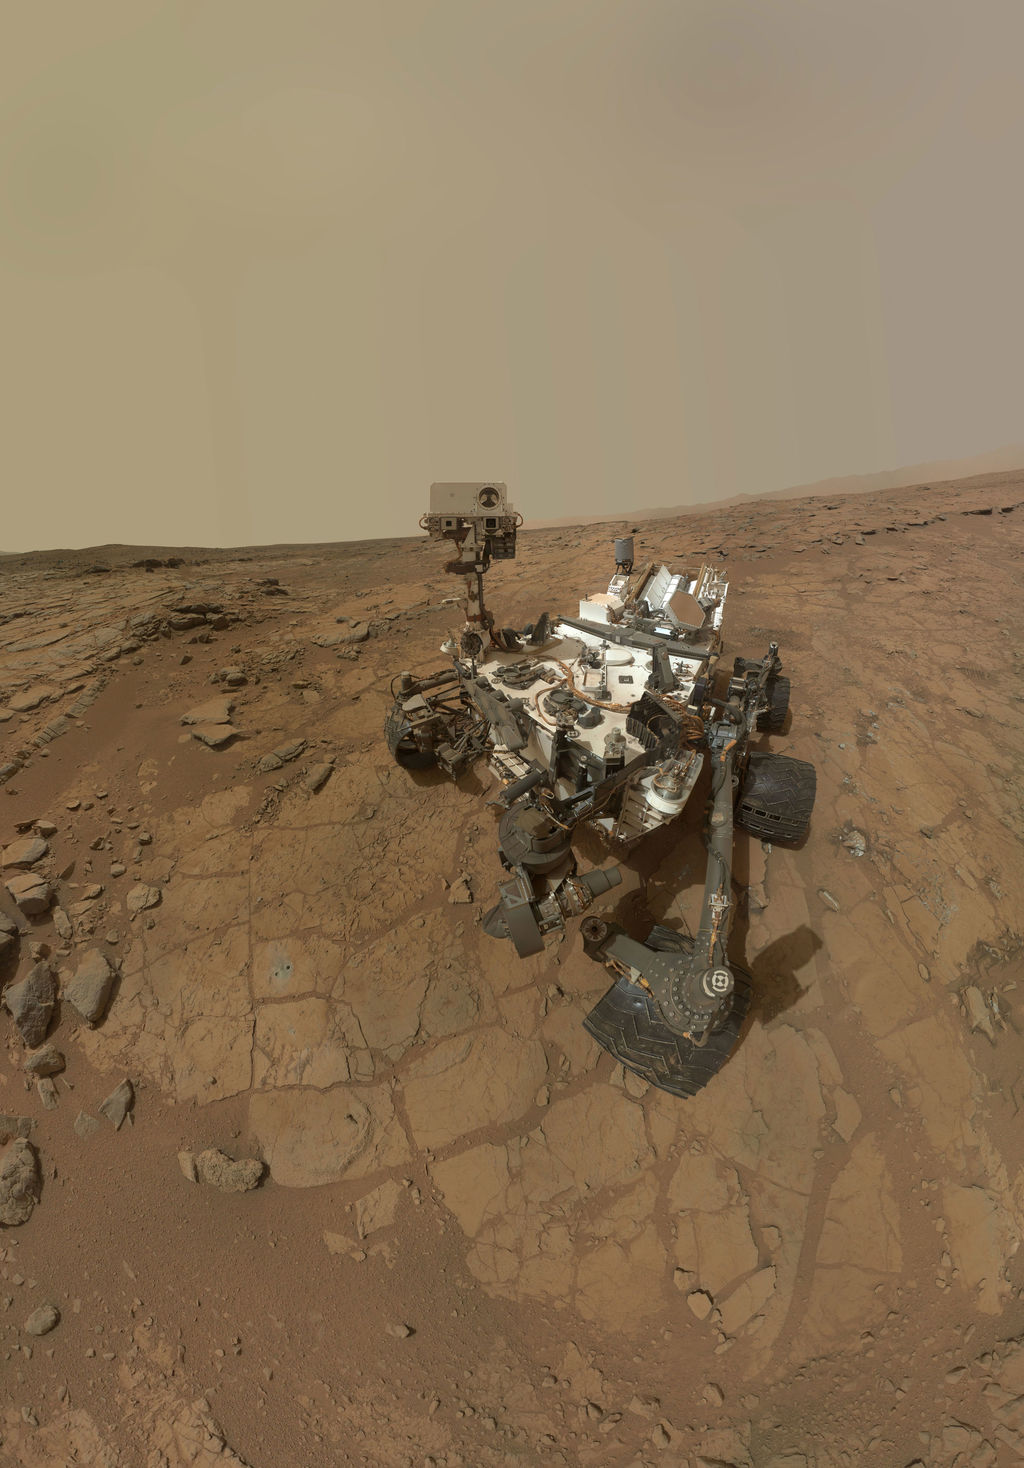 This self-portrait of NASA's Mars rover Curiosity combines dozens of exposures taken by the rover's Mars Hand Lens Imager (MAHLI) during the 177th Martian day, or sol, of Curiosity's work on Mars (Feb. 3, 2013), plus three exposures taken during Sol 270 (May 10, 2013) to update the appearance of part of the ground beside the rover.